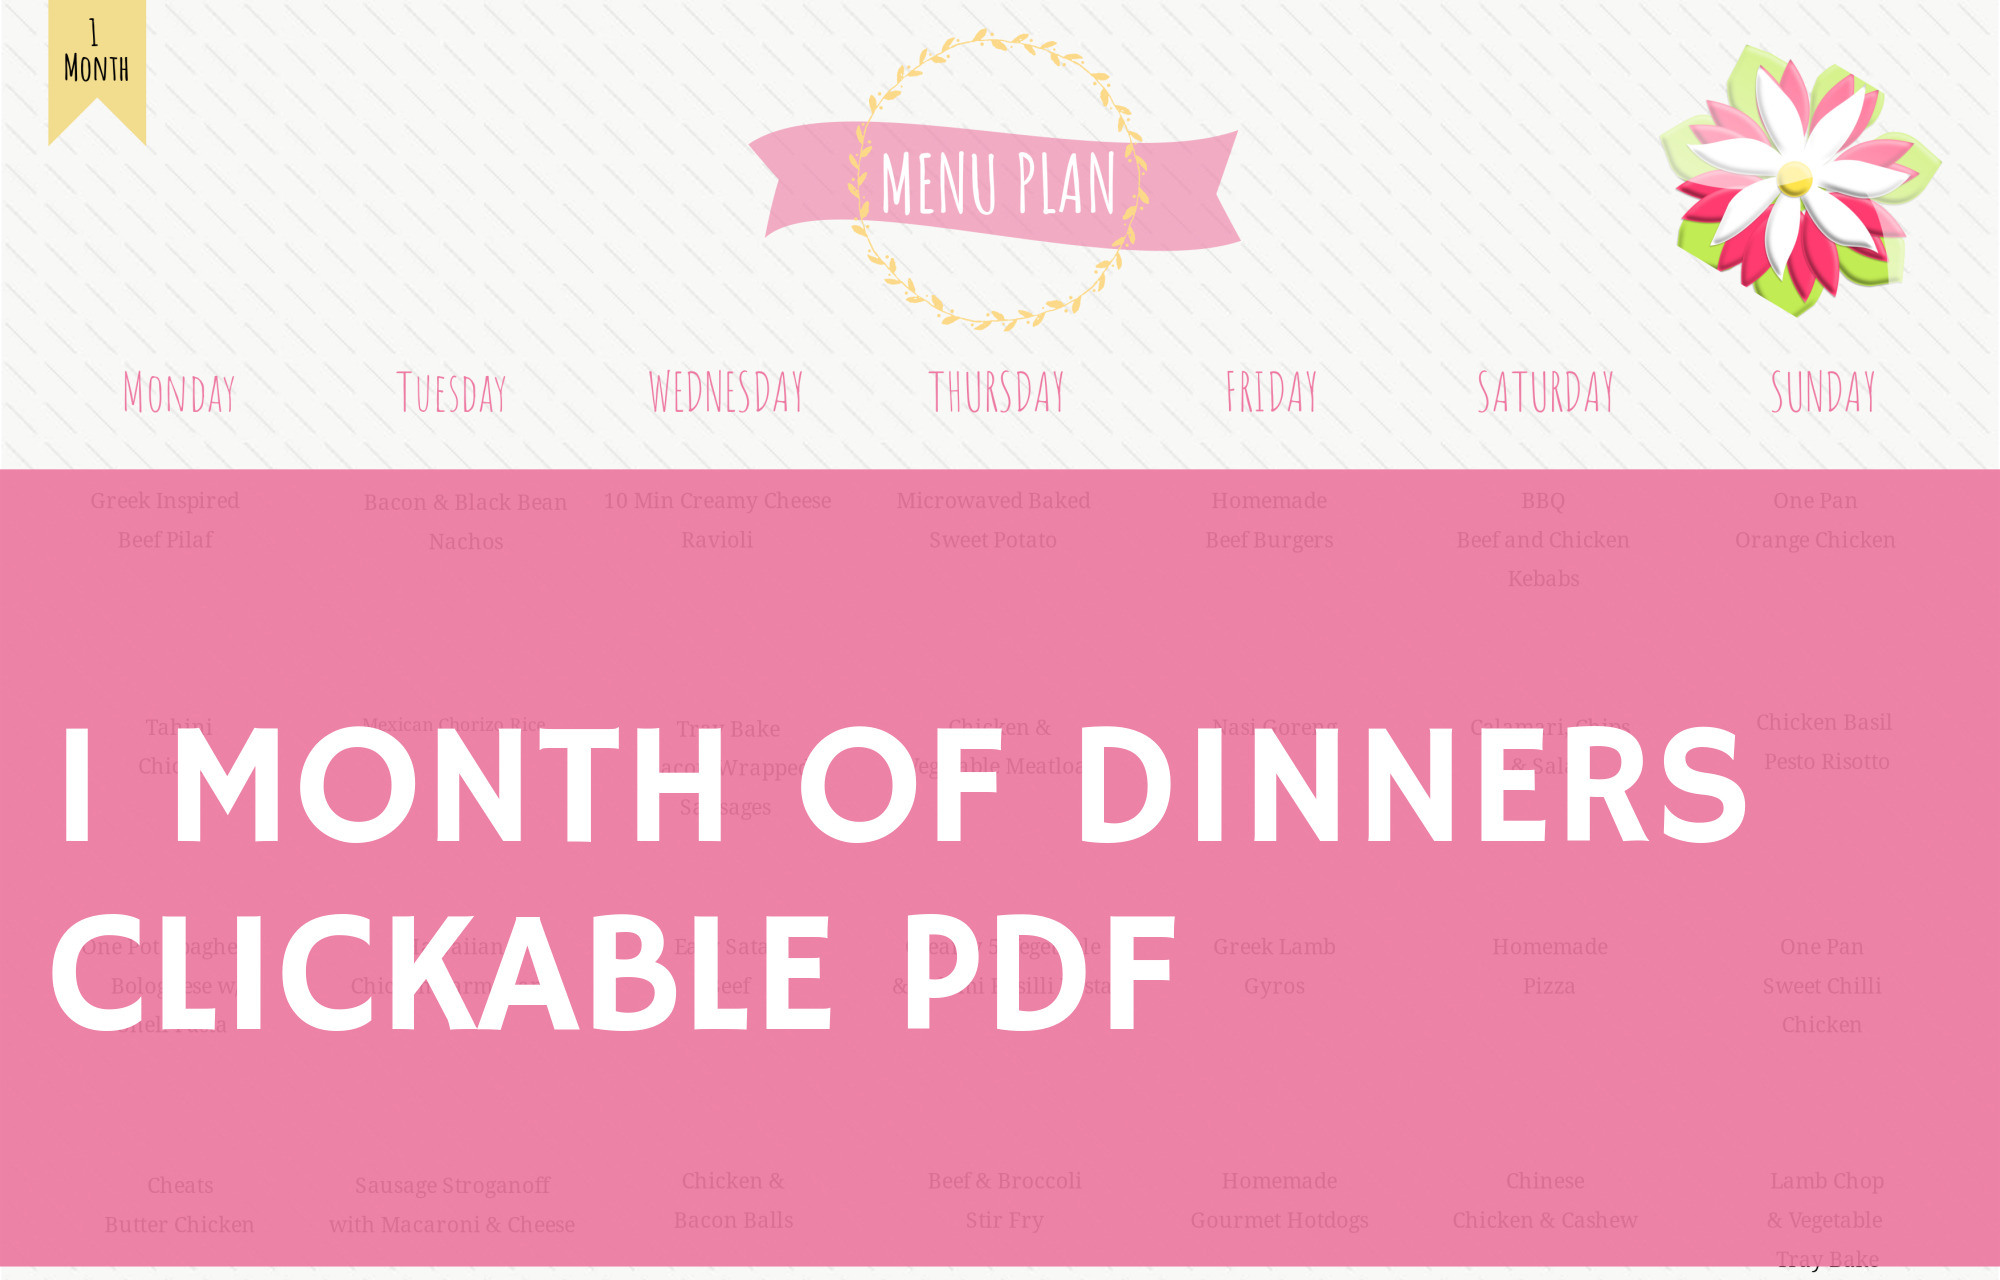 SPRING - 1 Month of Dinners - Clickable PDF to Recipes